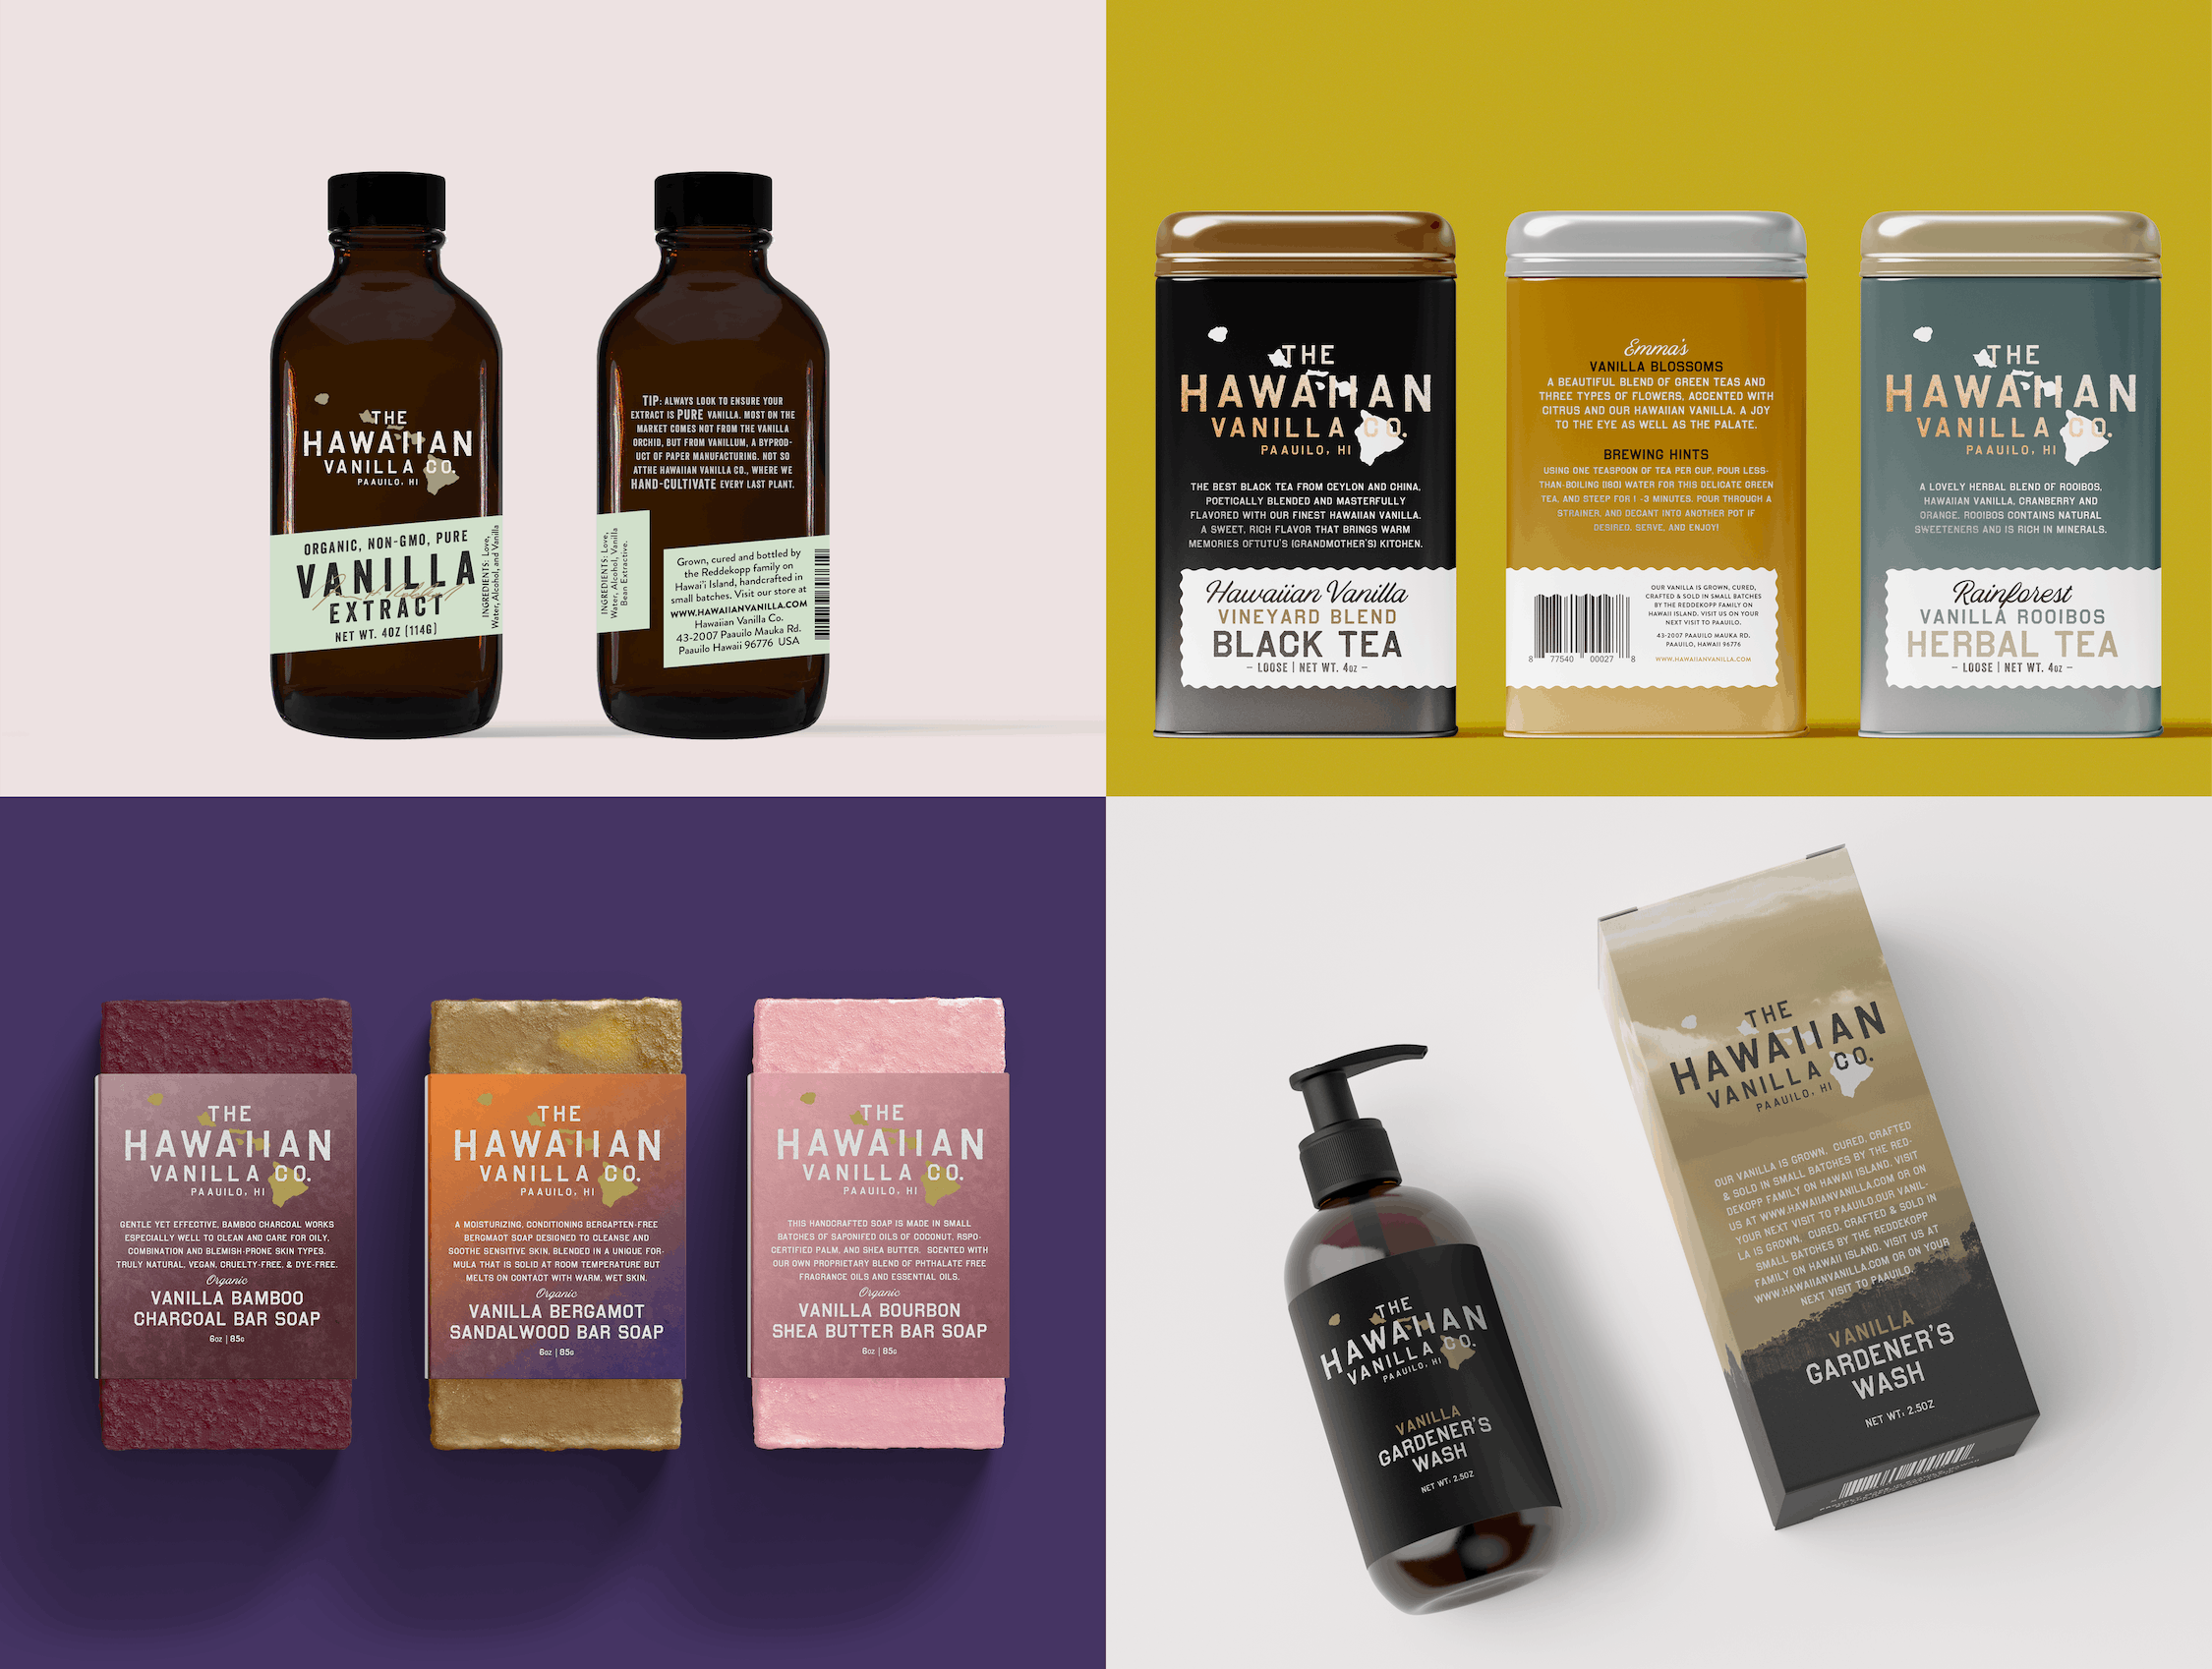 Hawaiian Vanilla Co. Product Packaging